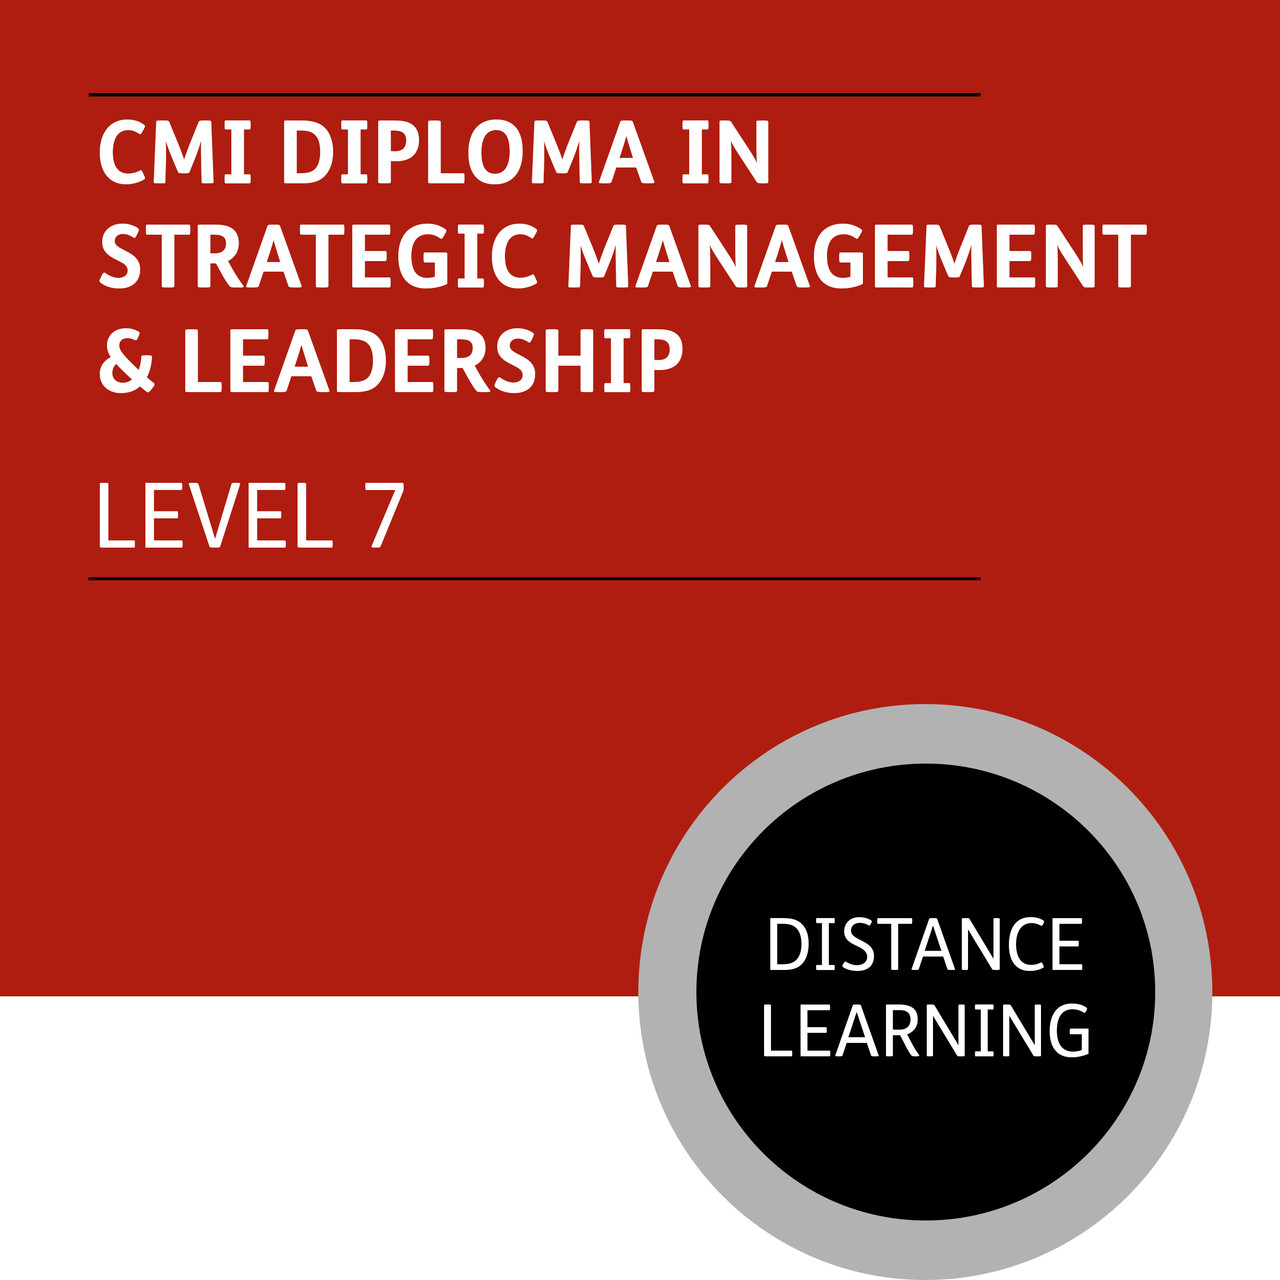 cmi diploma in strategic management and leadership level  cmi diploma in strategic management and leadership level 7 distance learning lite